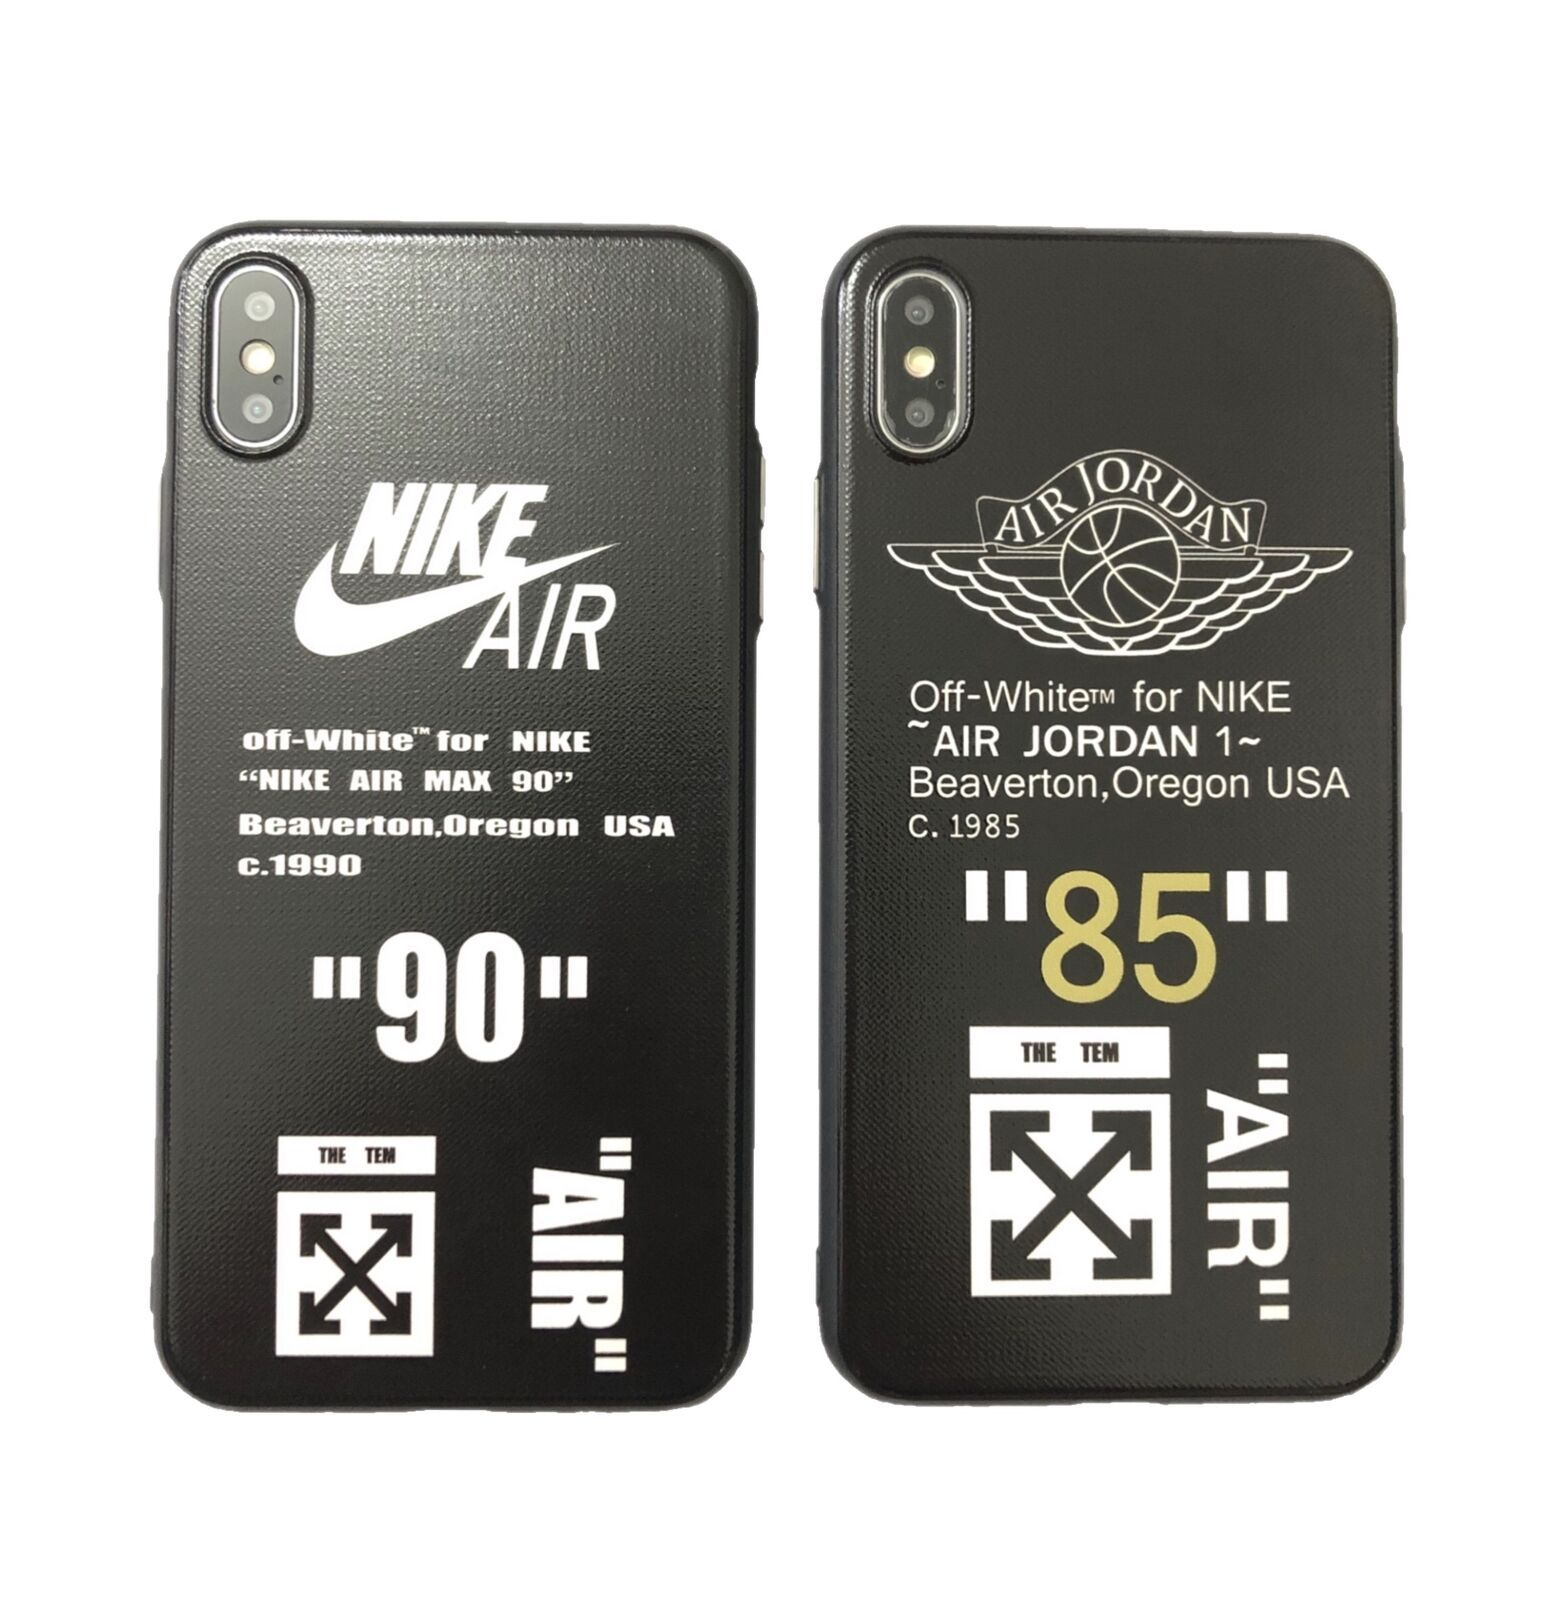 Off White For Air Jordan Nike Case Cover For Iphone 11 Pro Max Xr Xs X 7 8 6p Nike Iphone Cases Iphone 11 Case